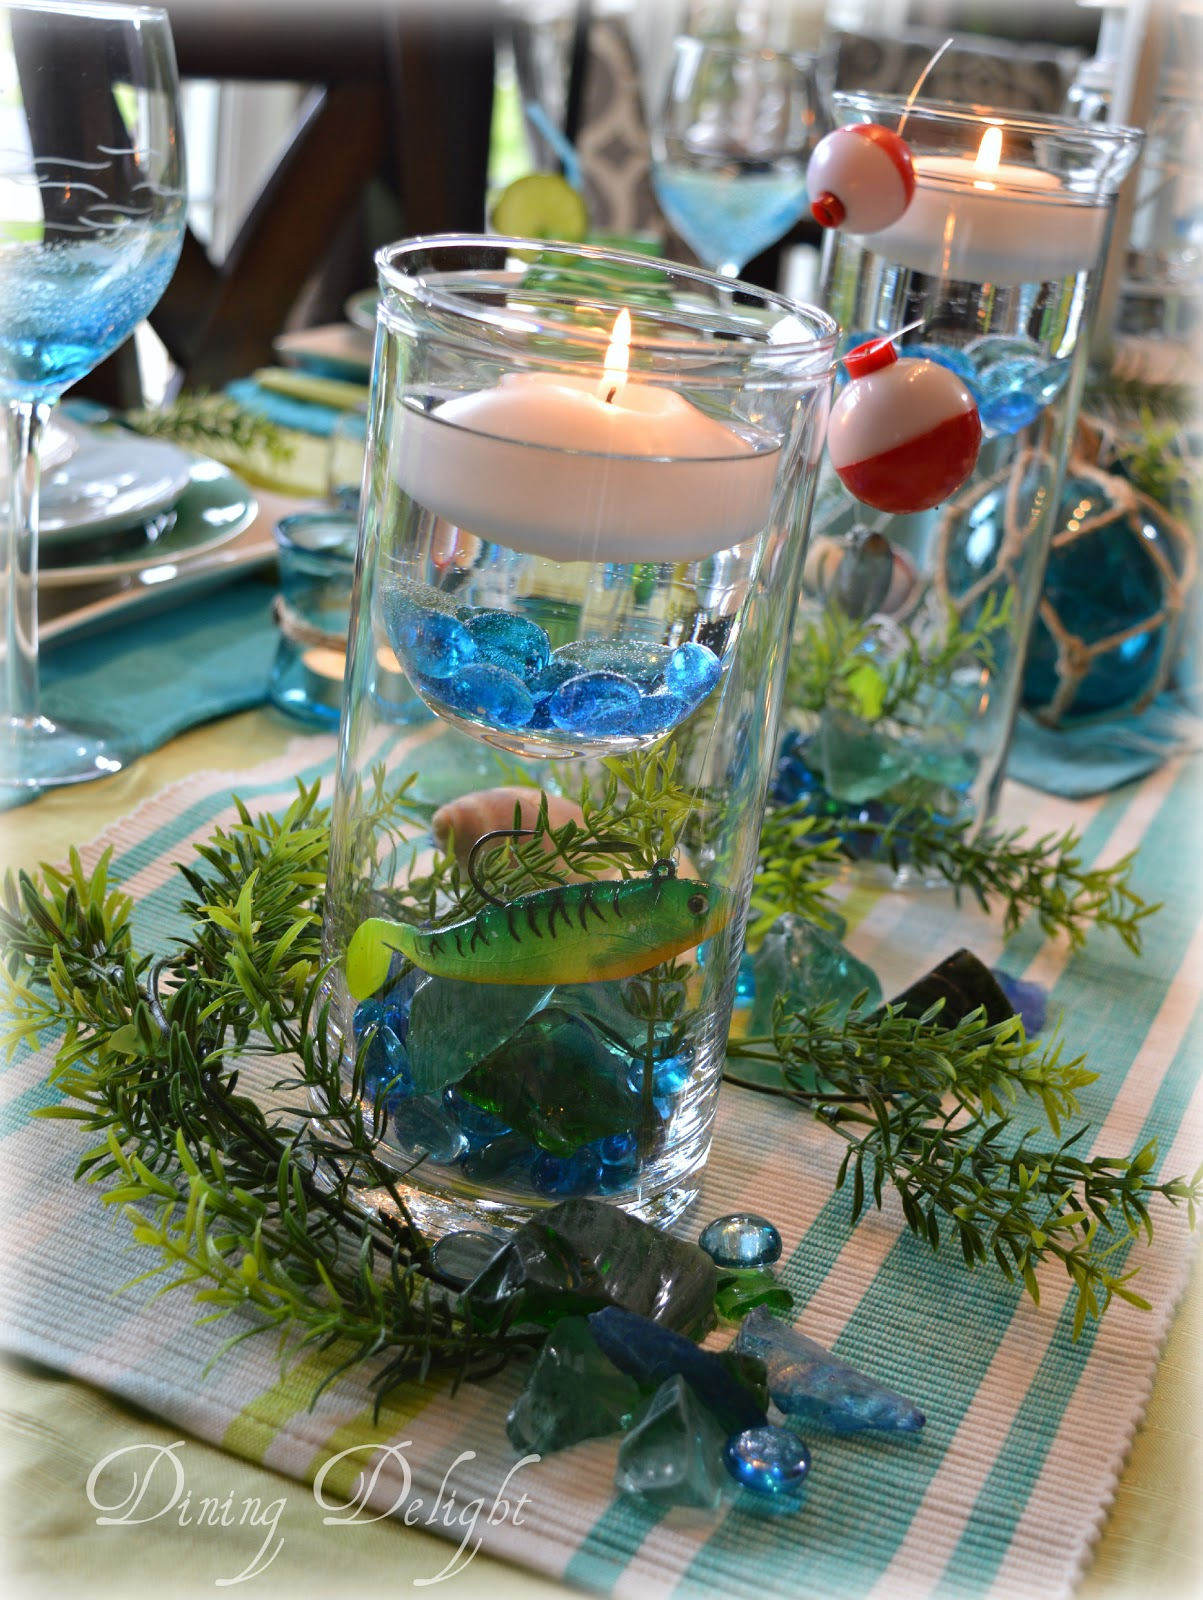 Dining delight fishing centerpiece in cylinder vase for Fish wedding centerpieces